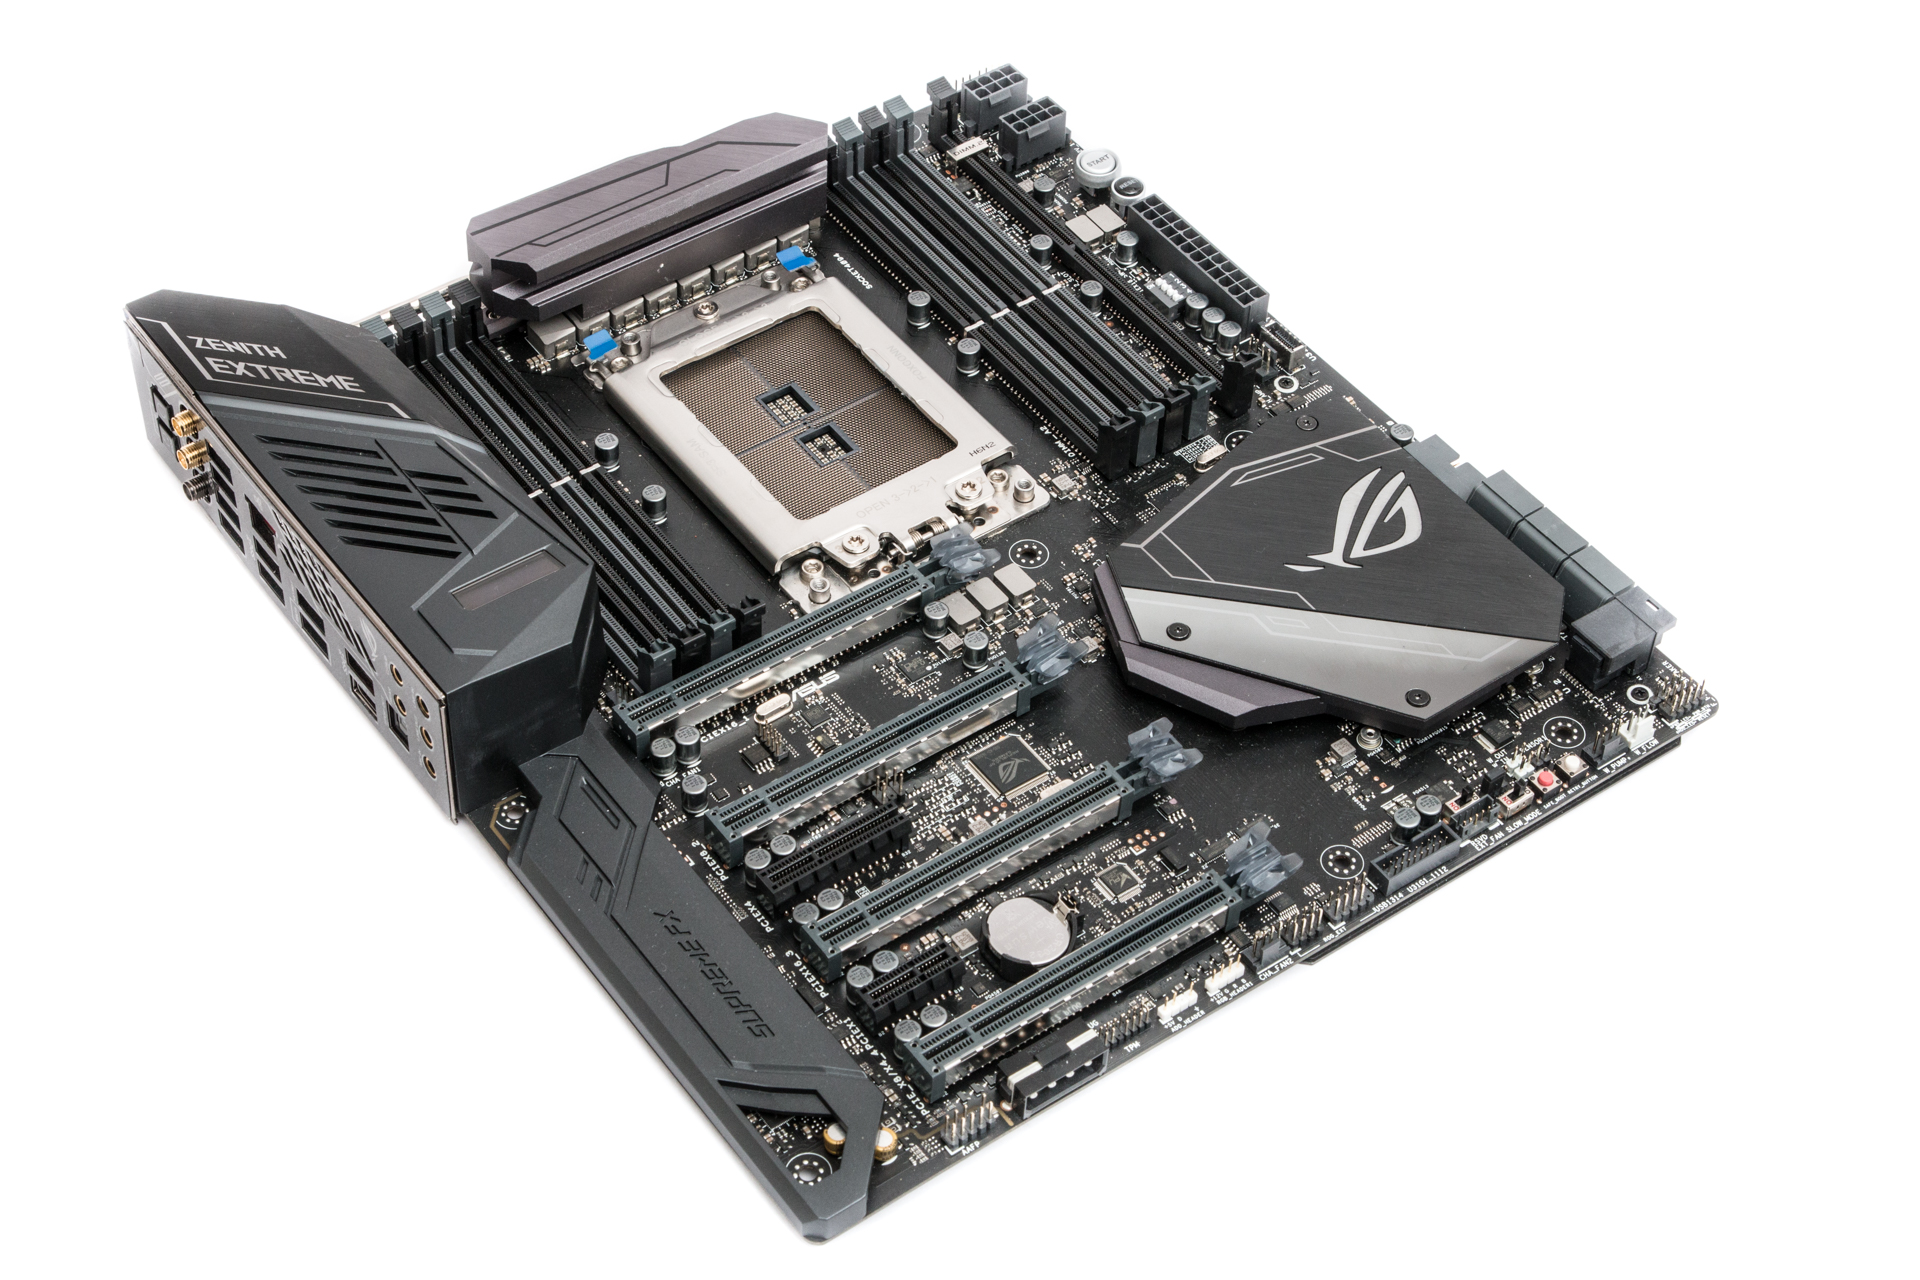 Asus Rog Zenith Extreme Review Accessories Others Repair Parts X3 Motherboard Circuit Board Click To Enlarge